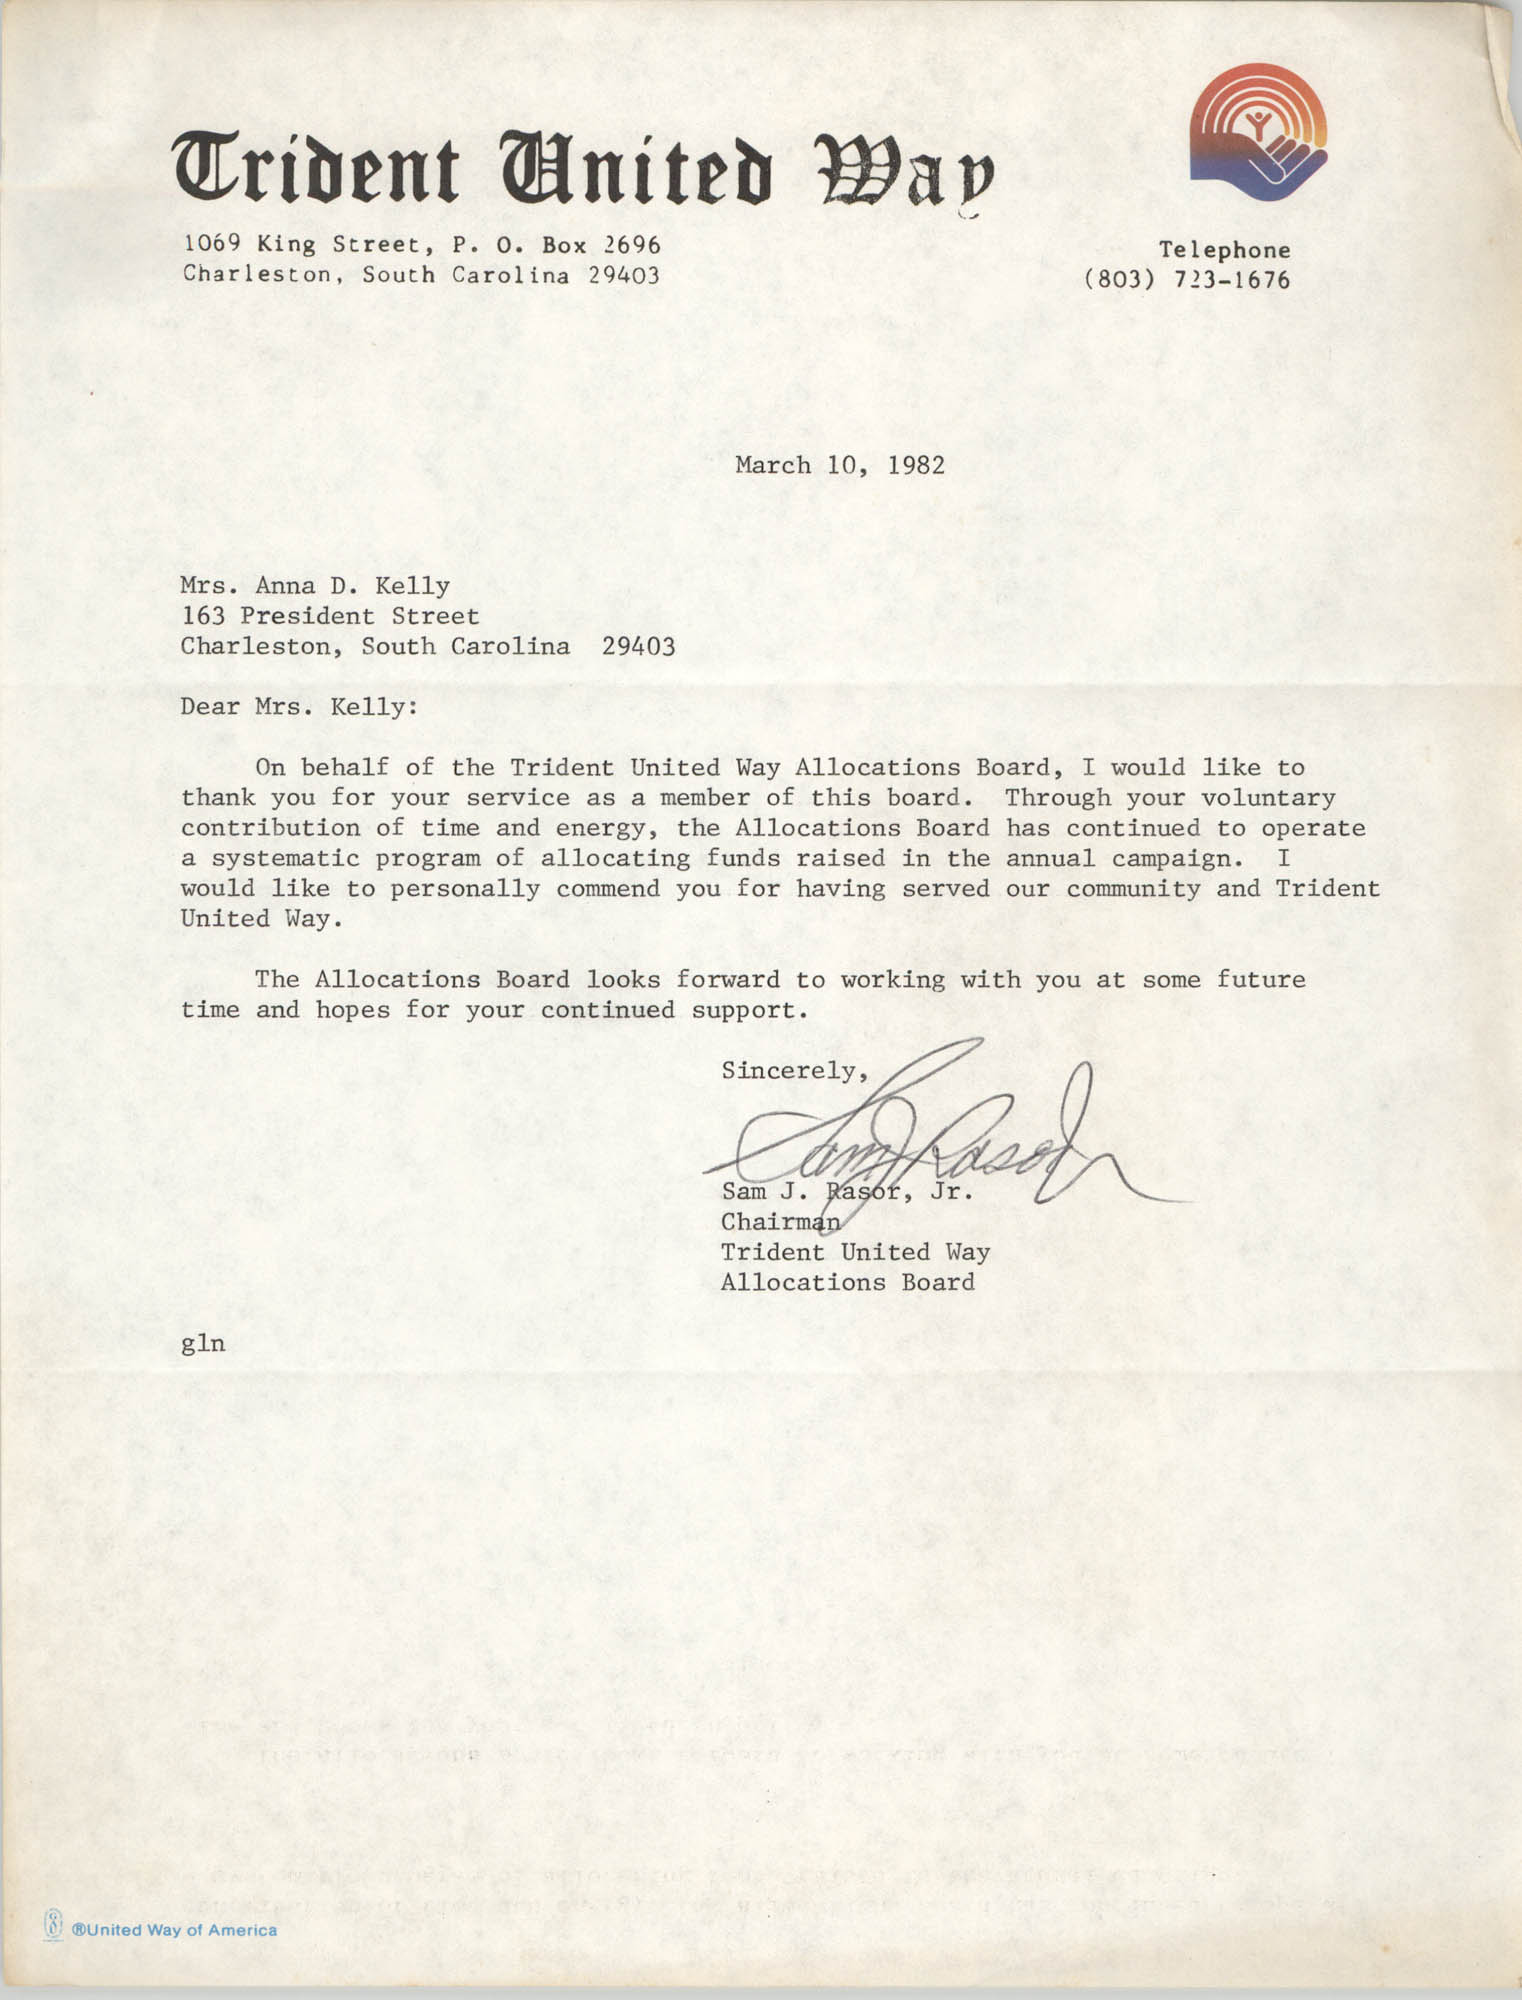 Letter from Sam J. Rasor, Jr. to Anna D. Kelly, March 10, 1982